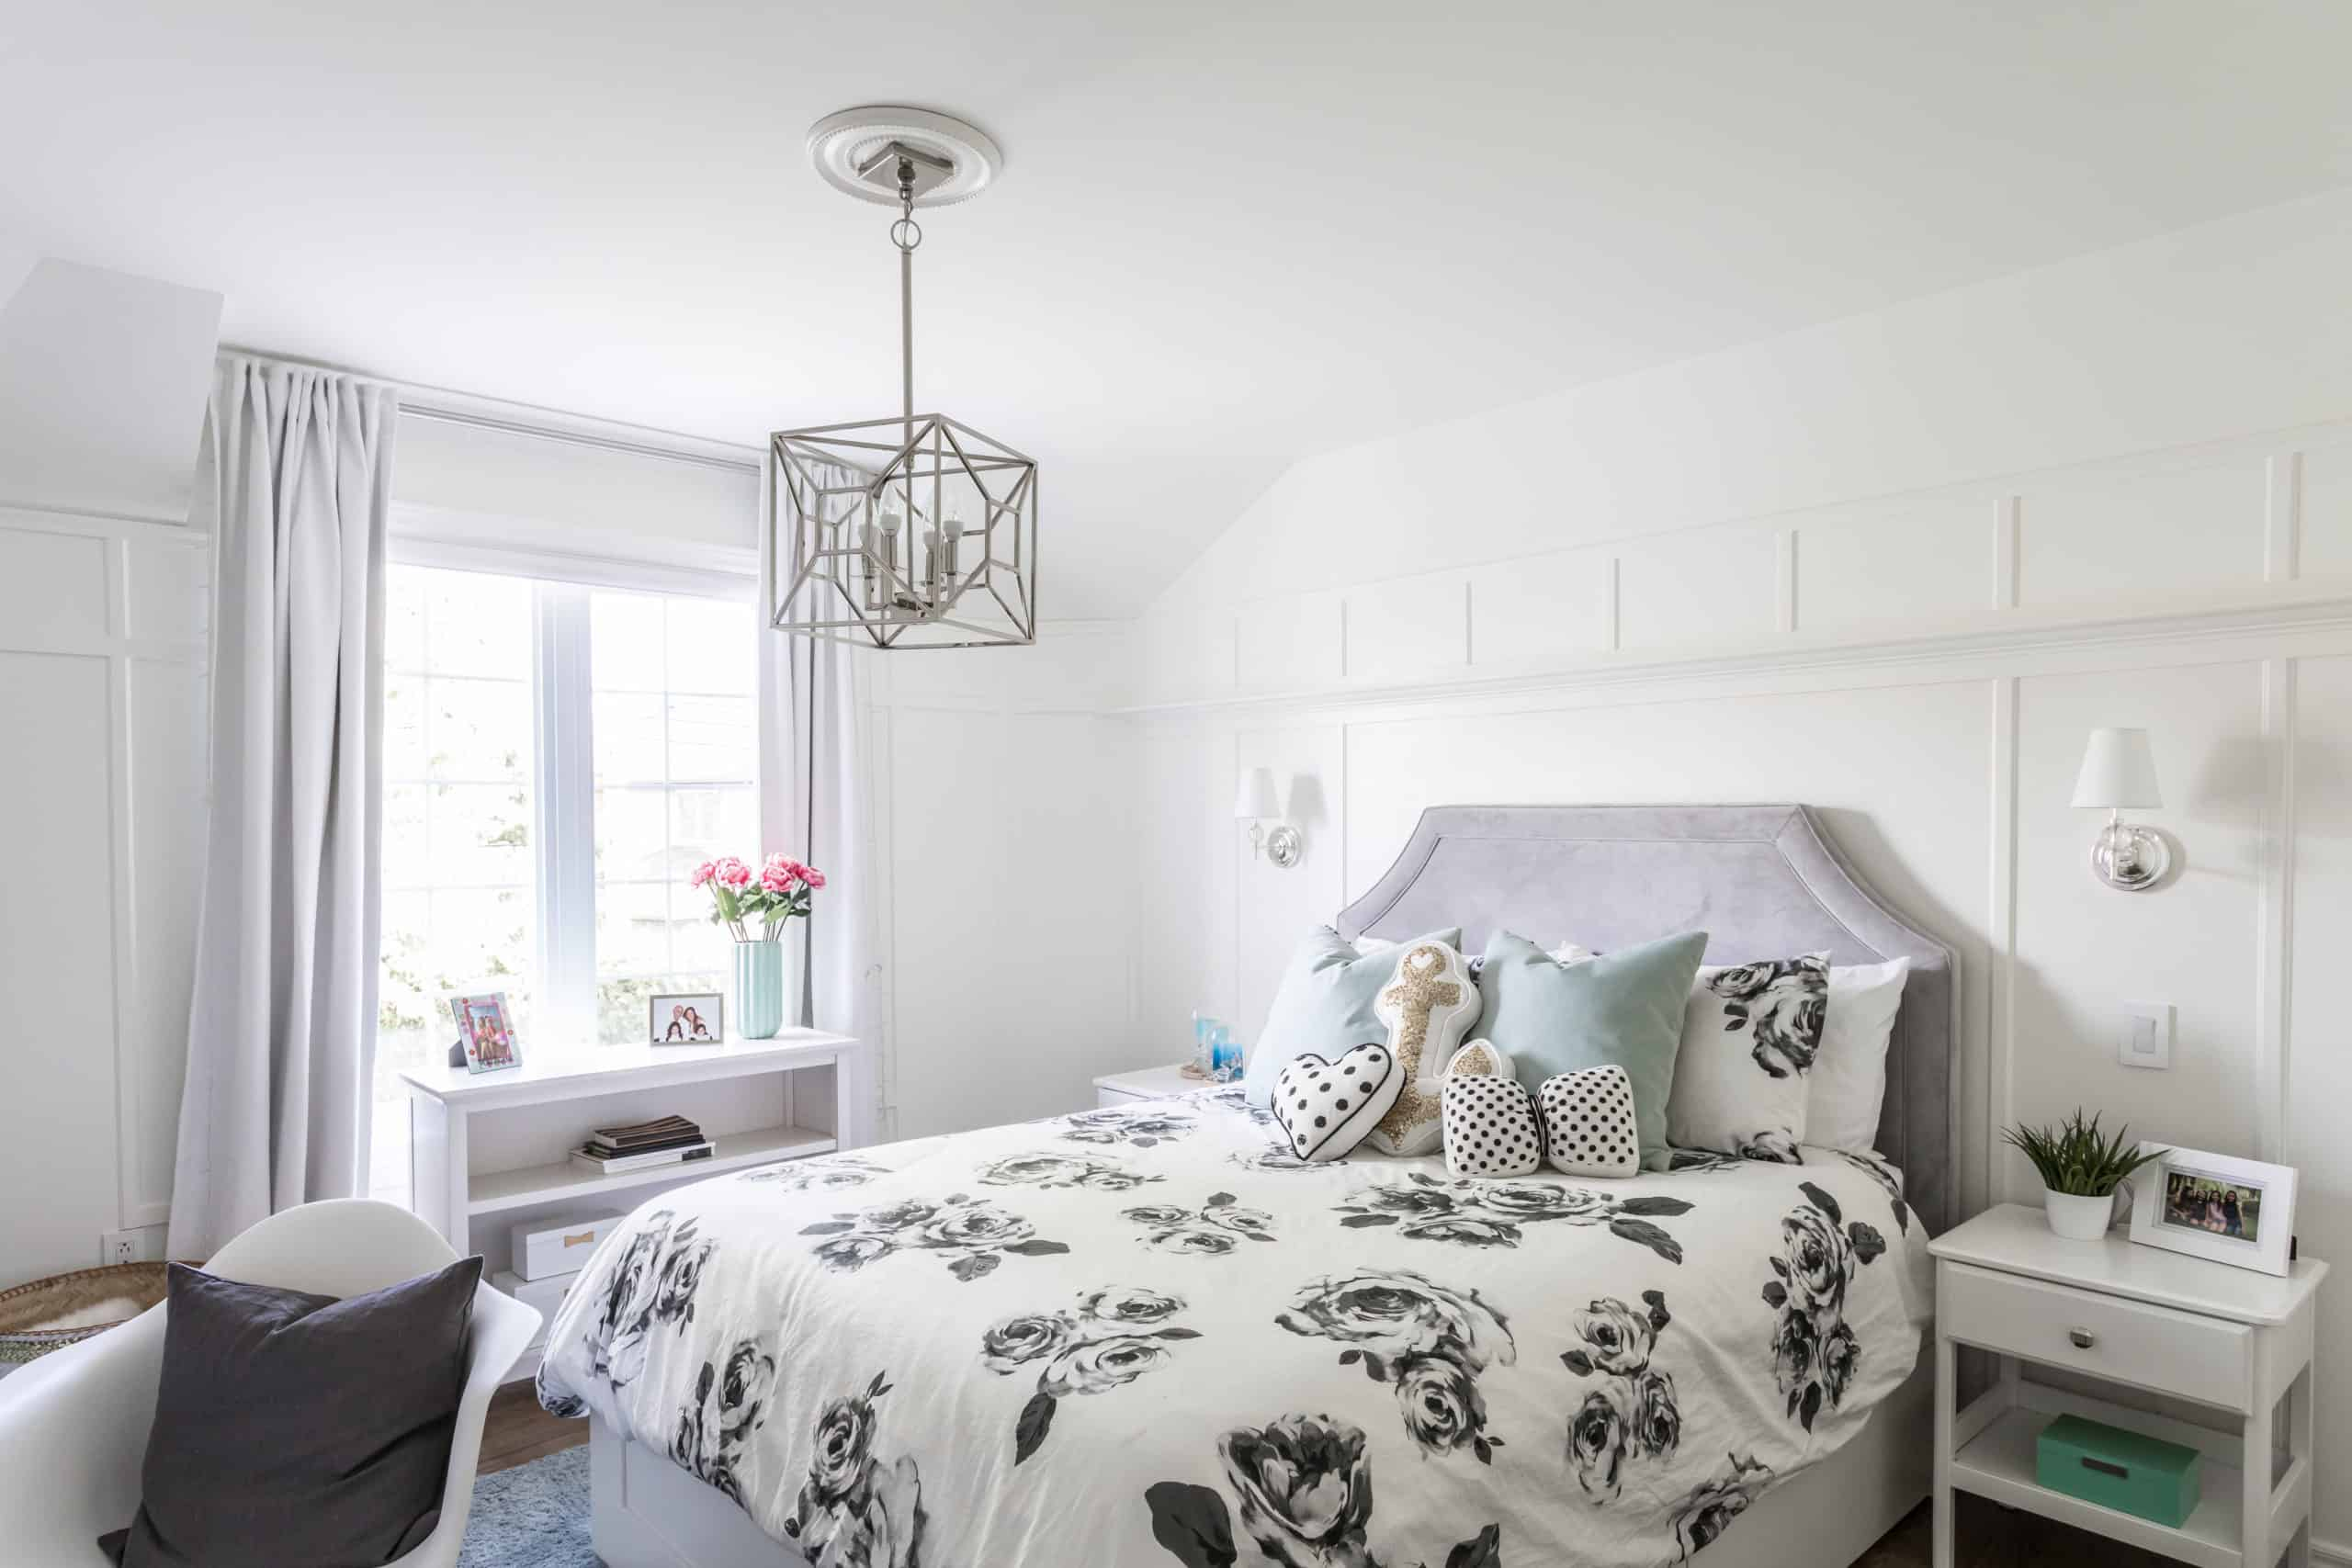 Cubic chandelier above a bed with a floral pattern on it